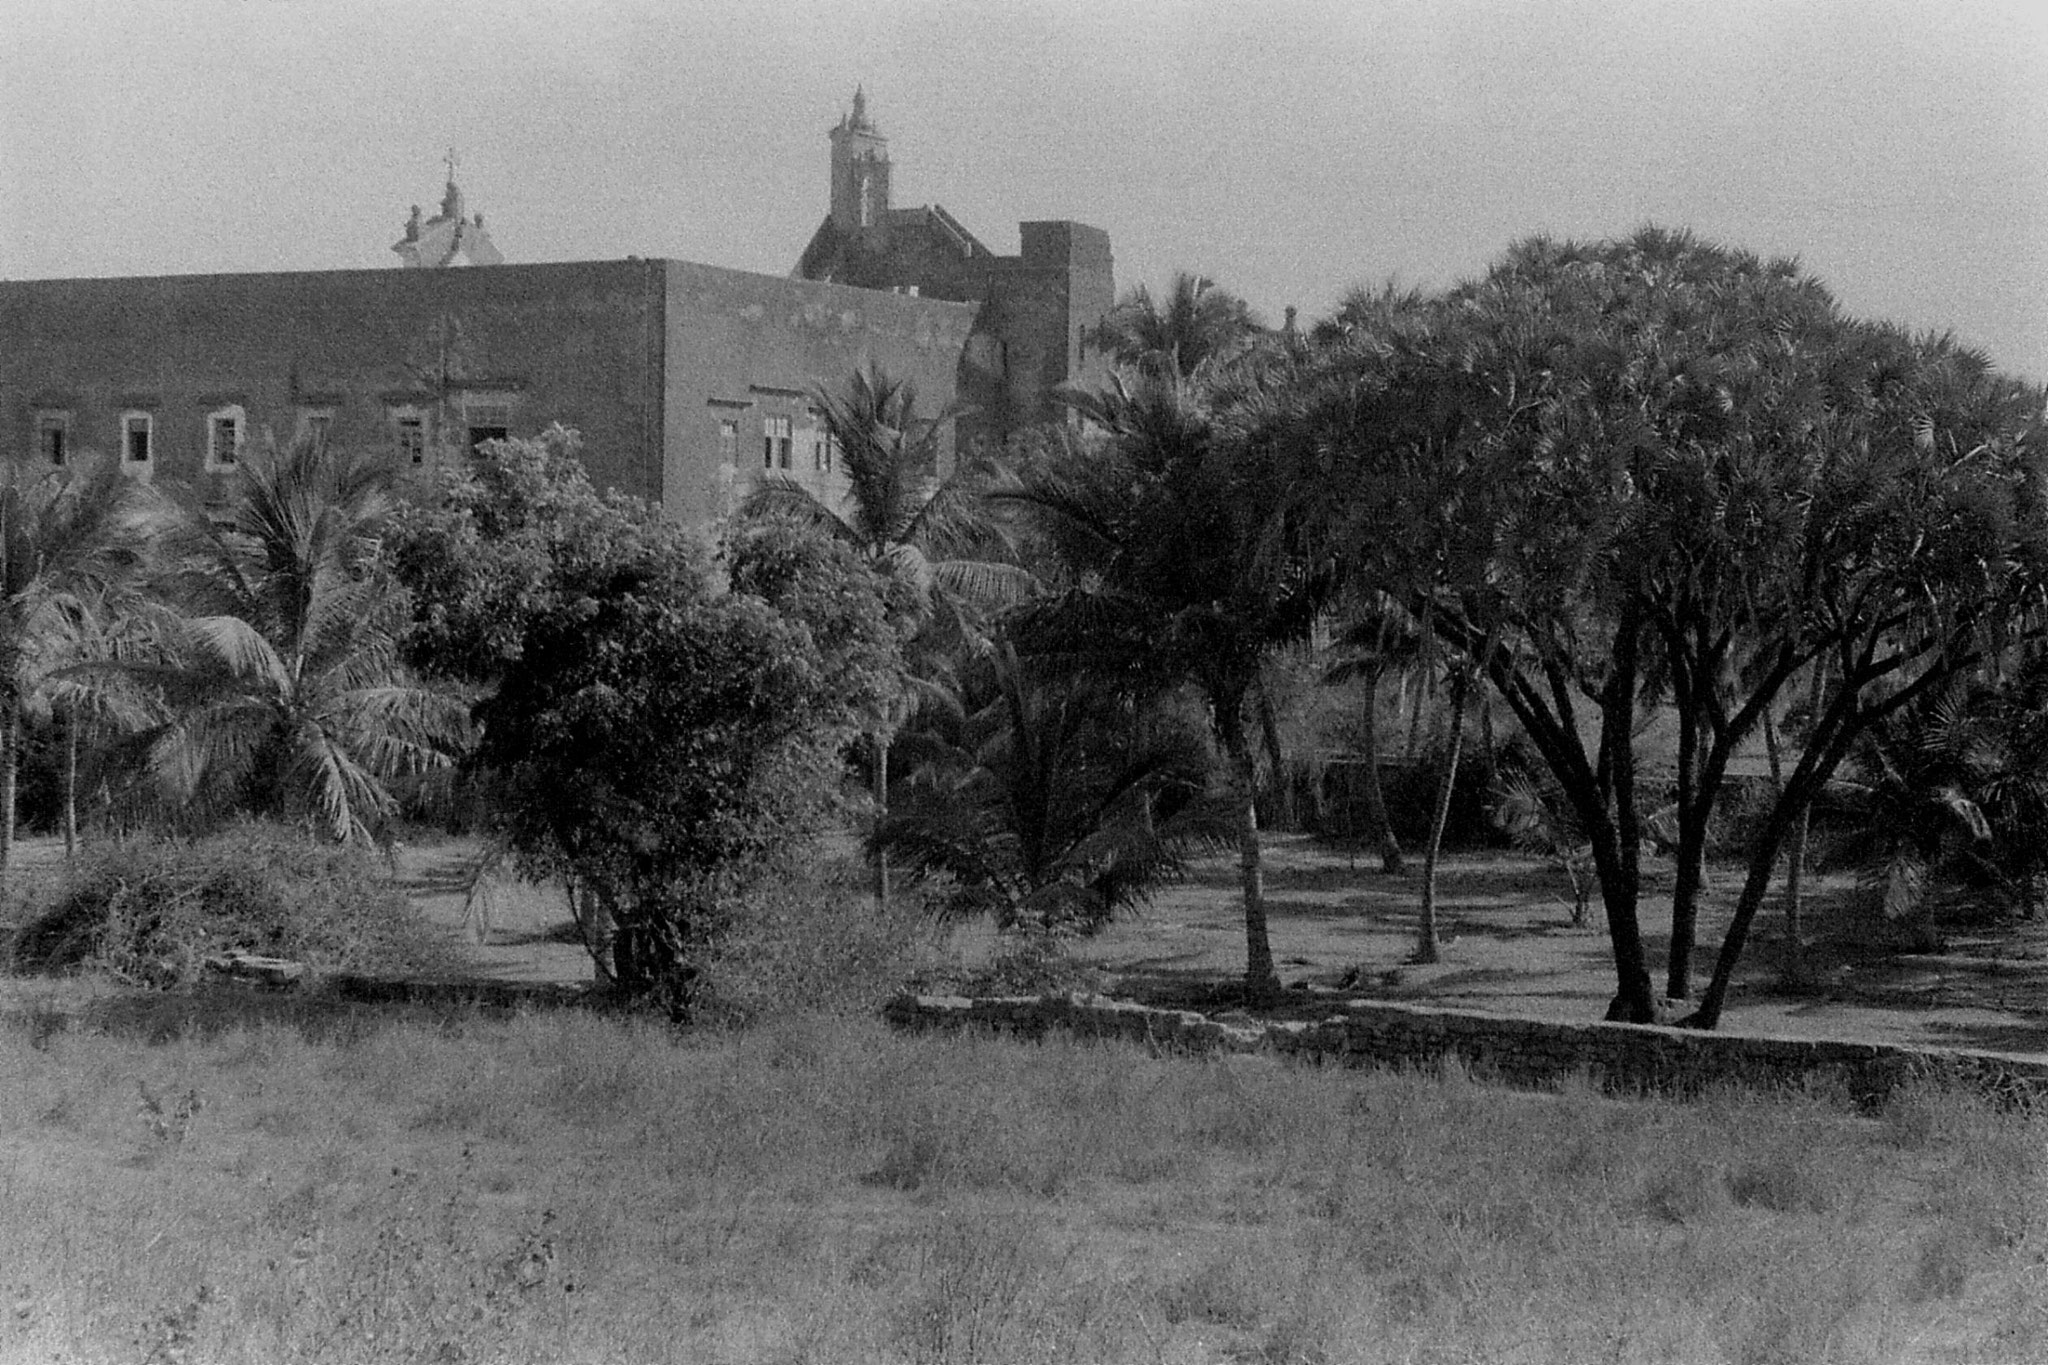 16/12/89: 10: Diu:  palm trees and St Peter's church